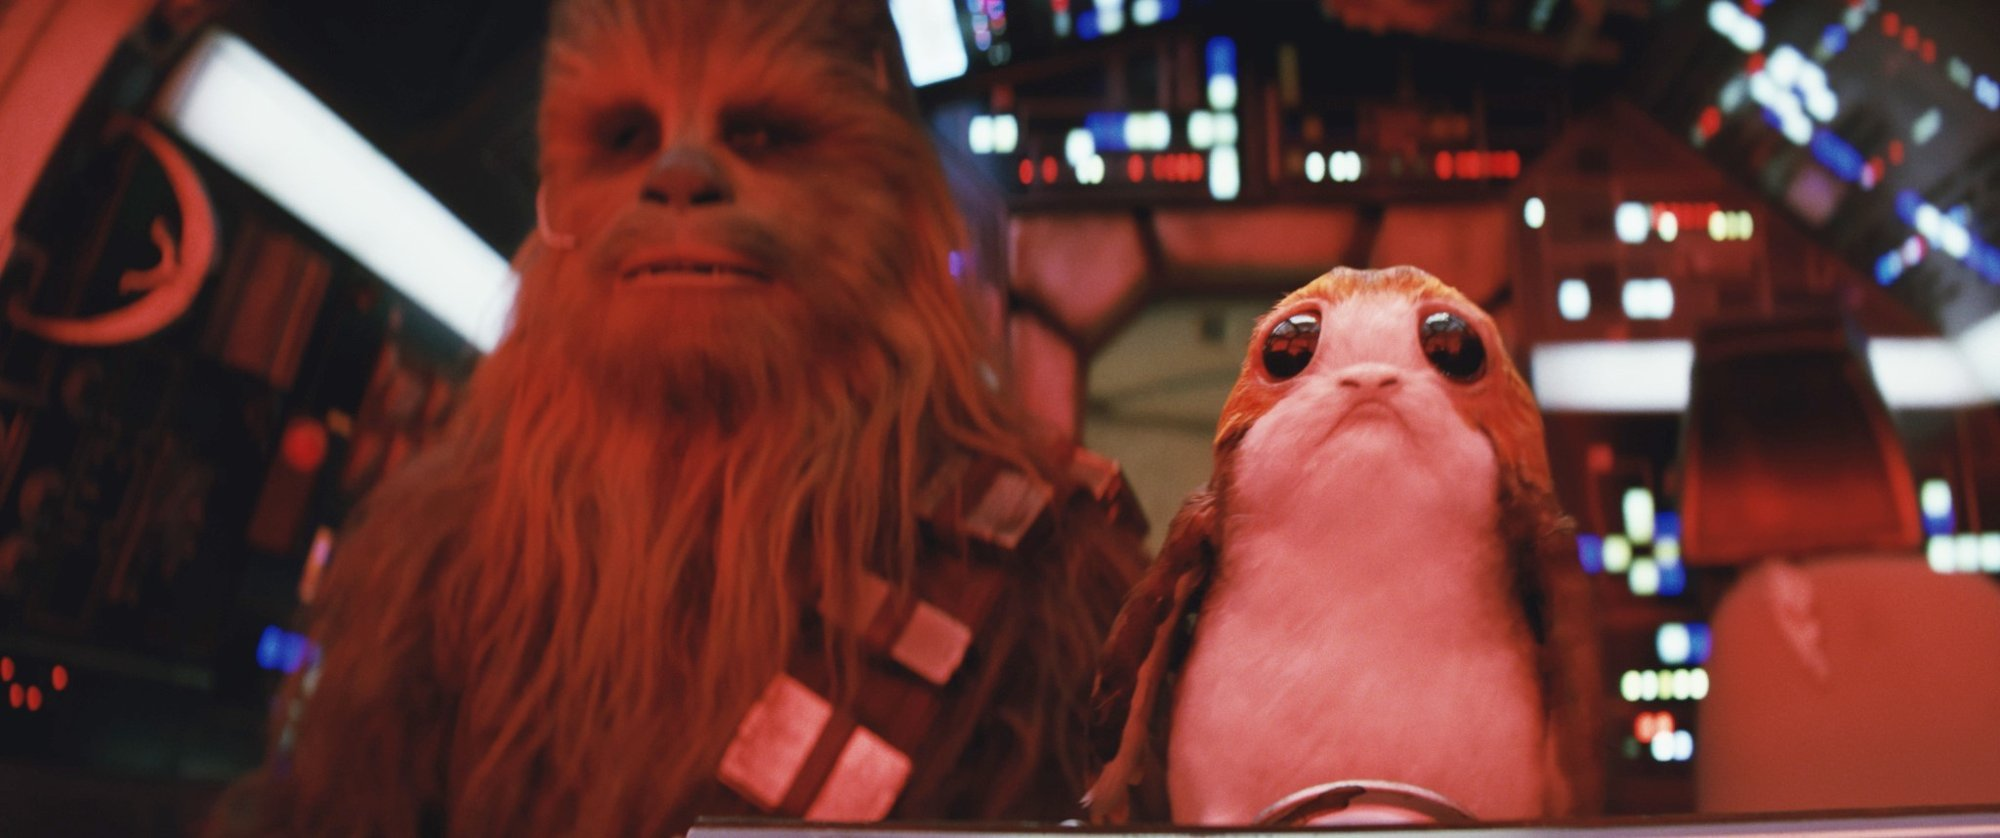 Star Wars: The Last Jedi - Chewbacca and Porg